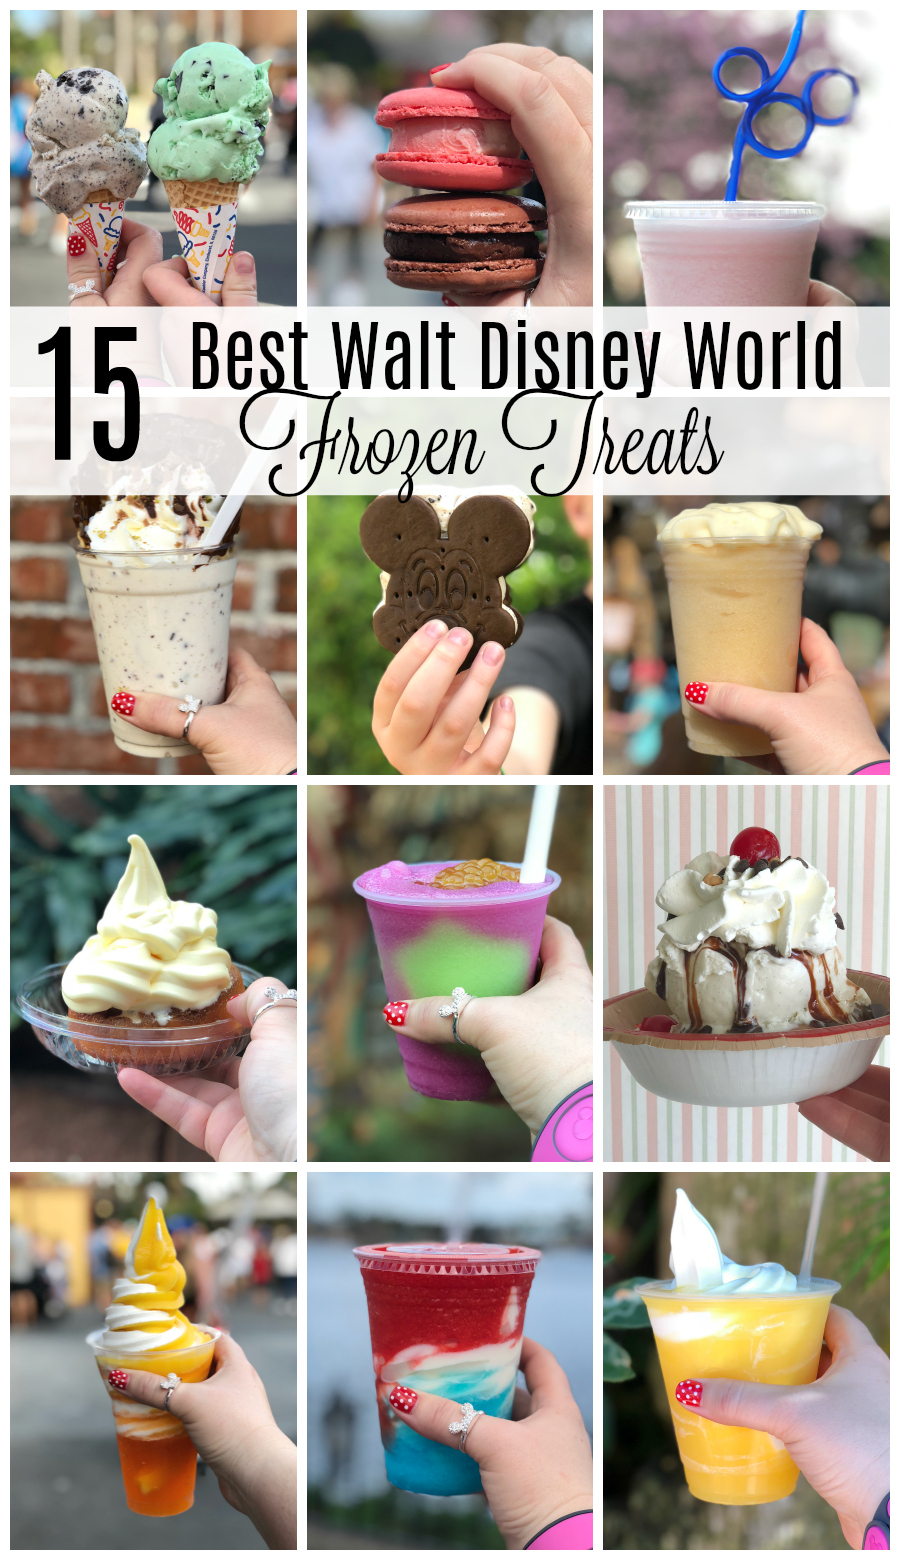 Best Walt Disney World Frozen Treats...you have to try these on your next #disneyvacation #disneyfood #disneyworld #waltdisneyworld